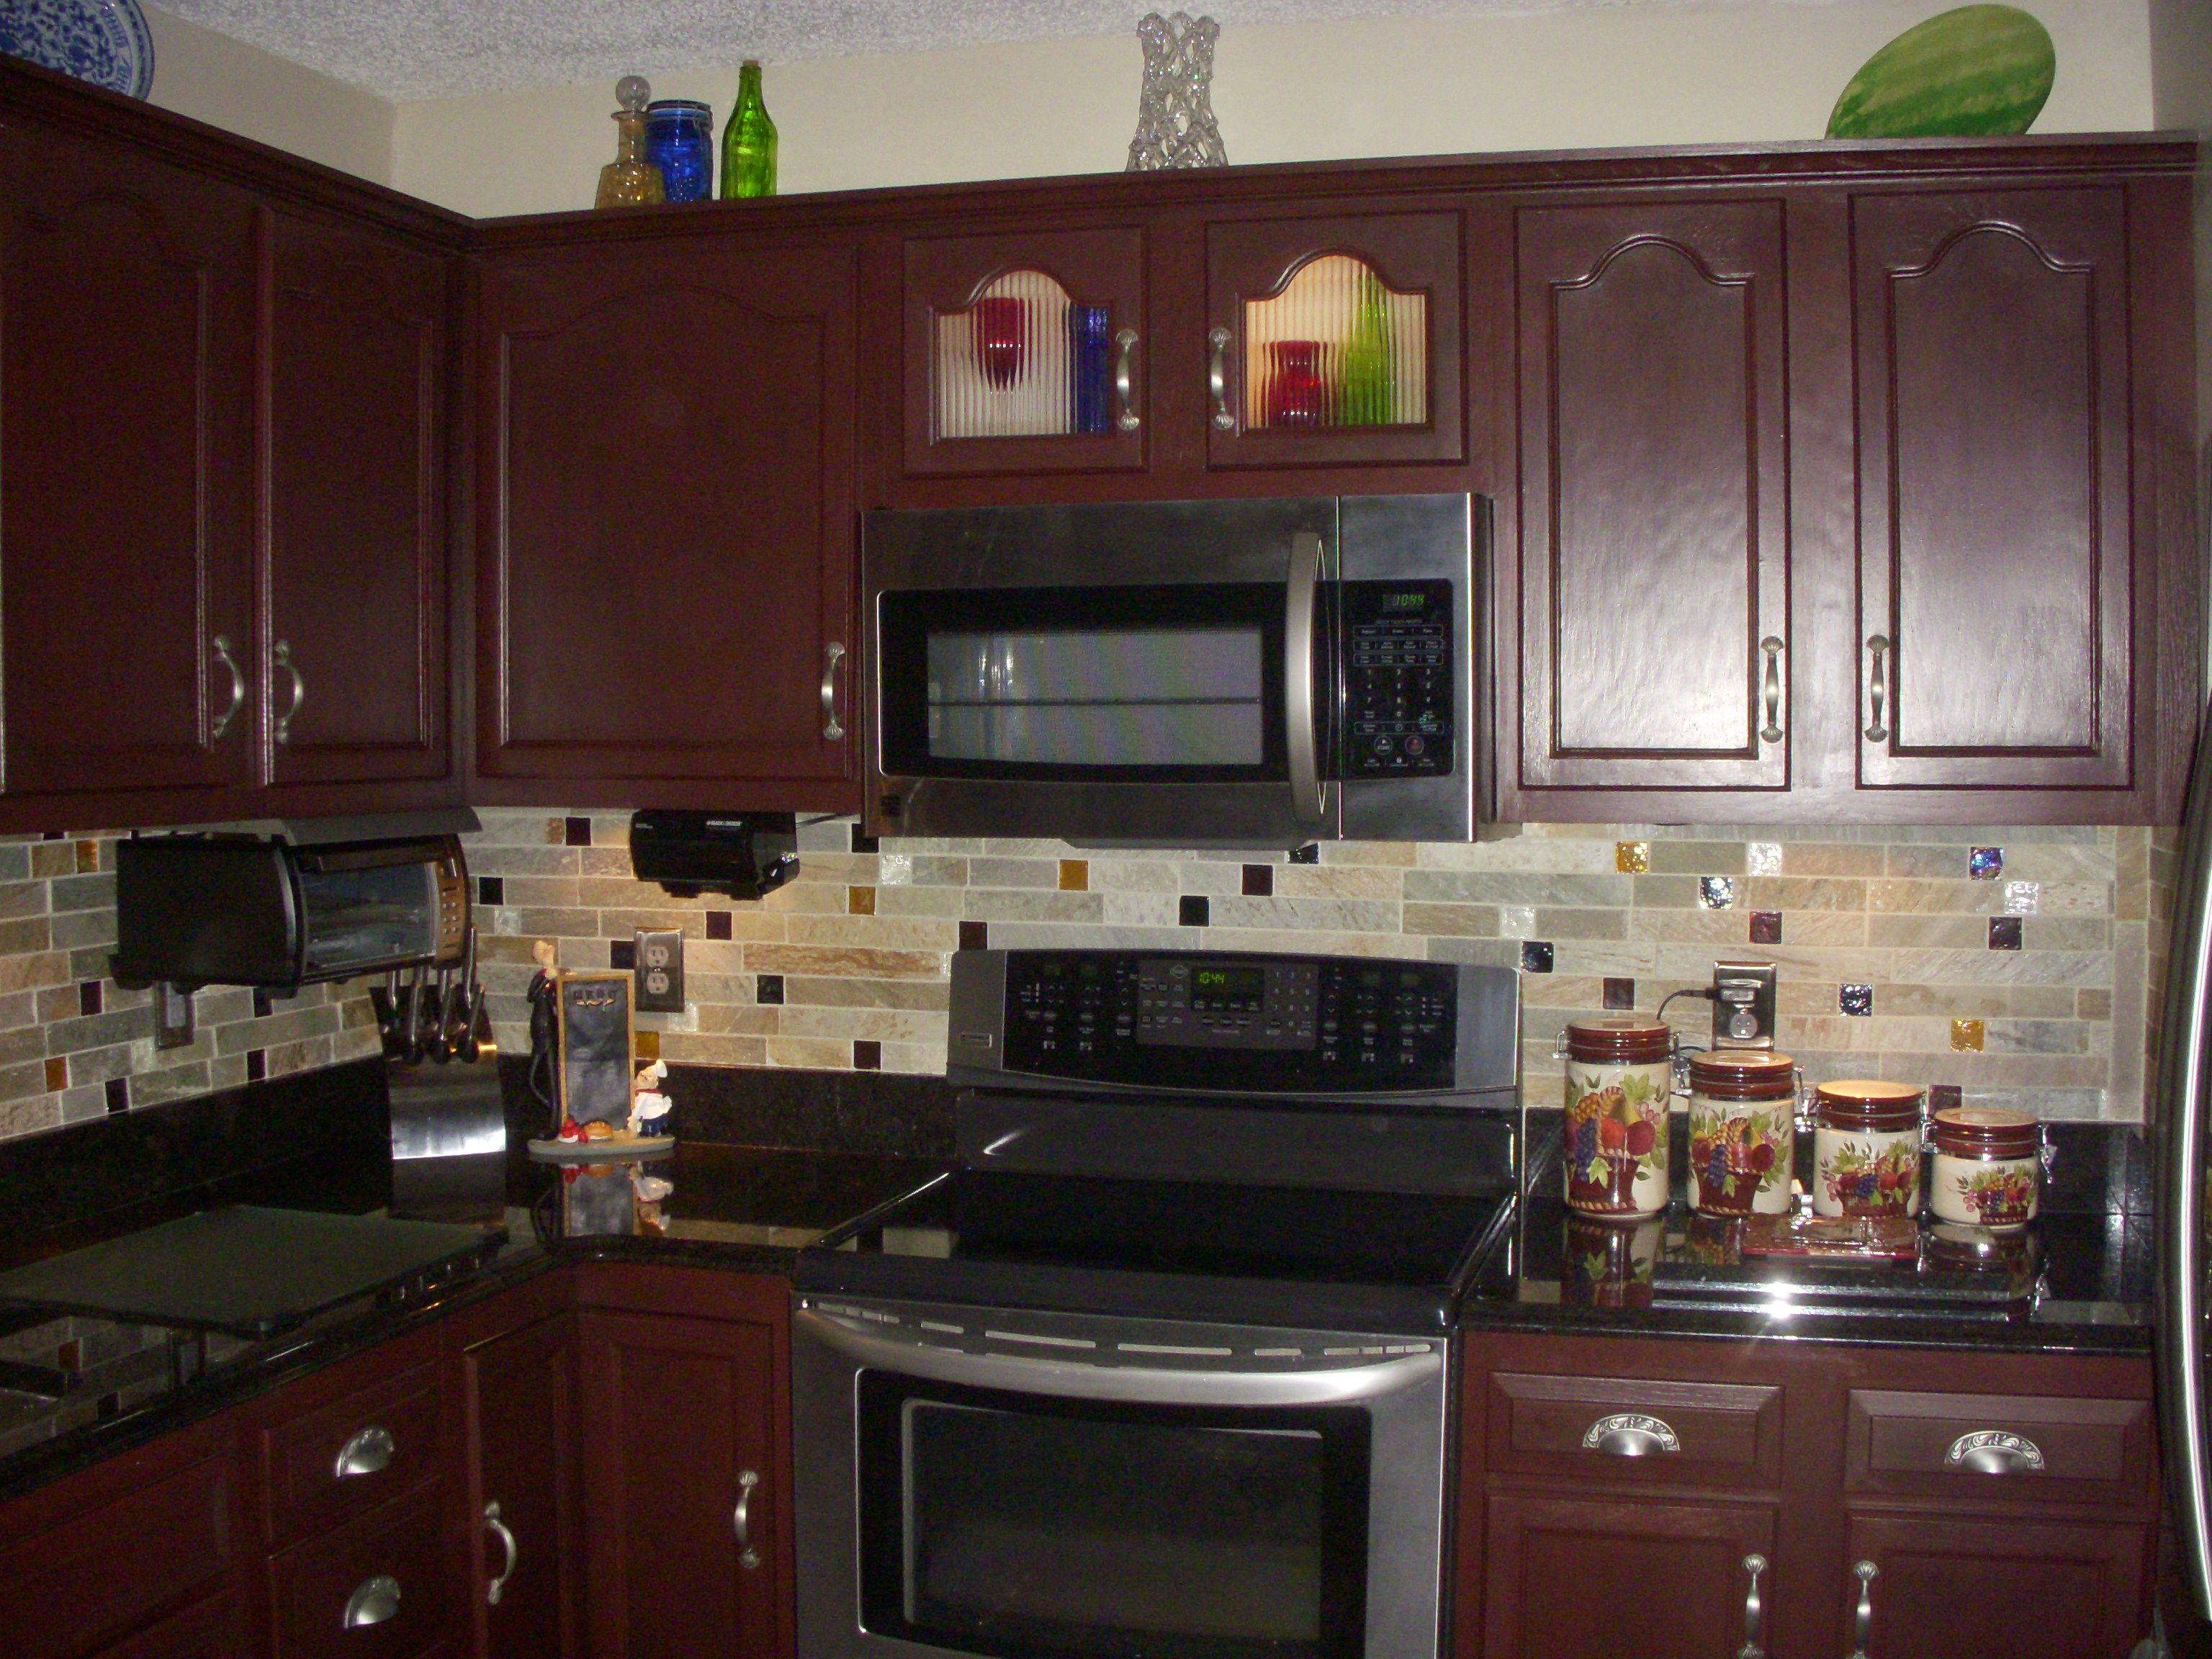 Merveilleux Testimonial Gallery: Rust Oleum Cabinet Transformations®   A Revolutionary  Kitchen Transformation System (Cabernet)